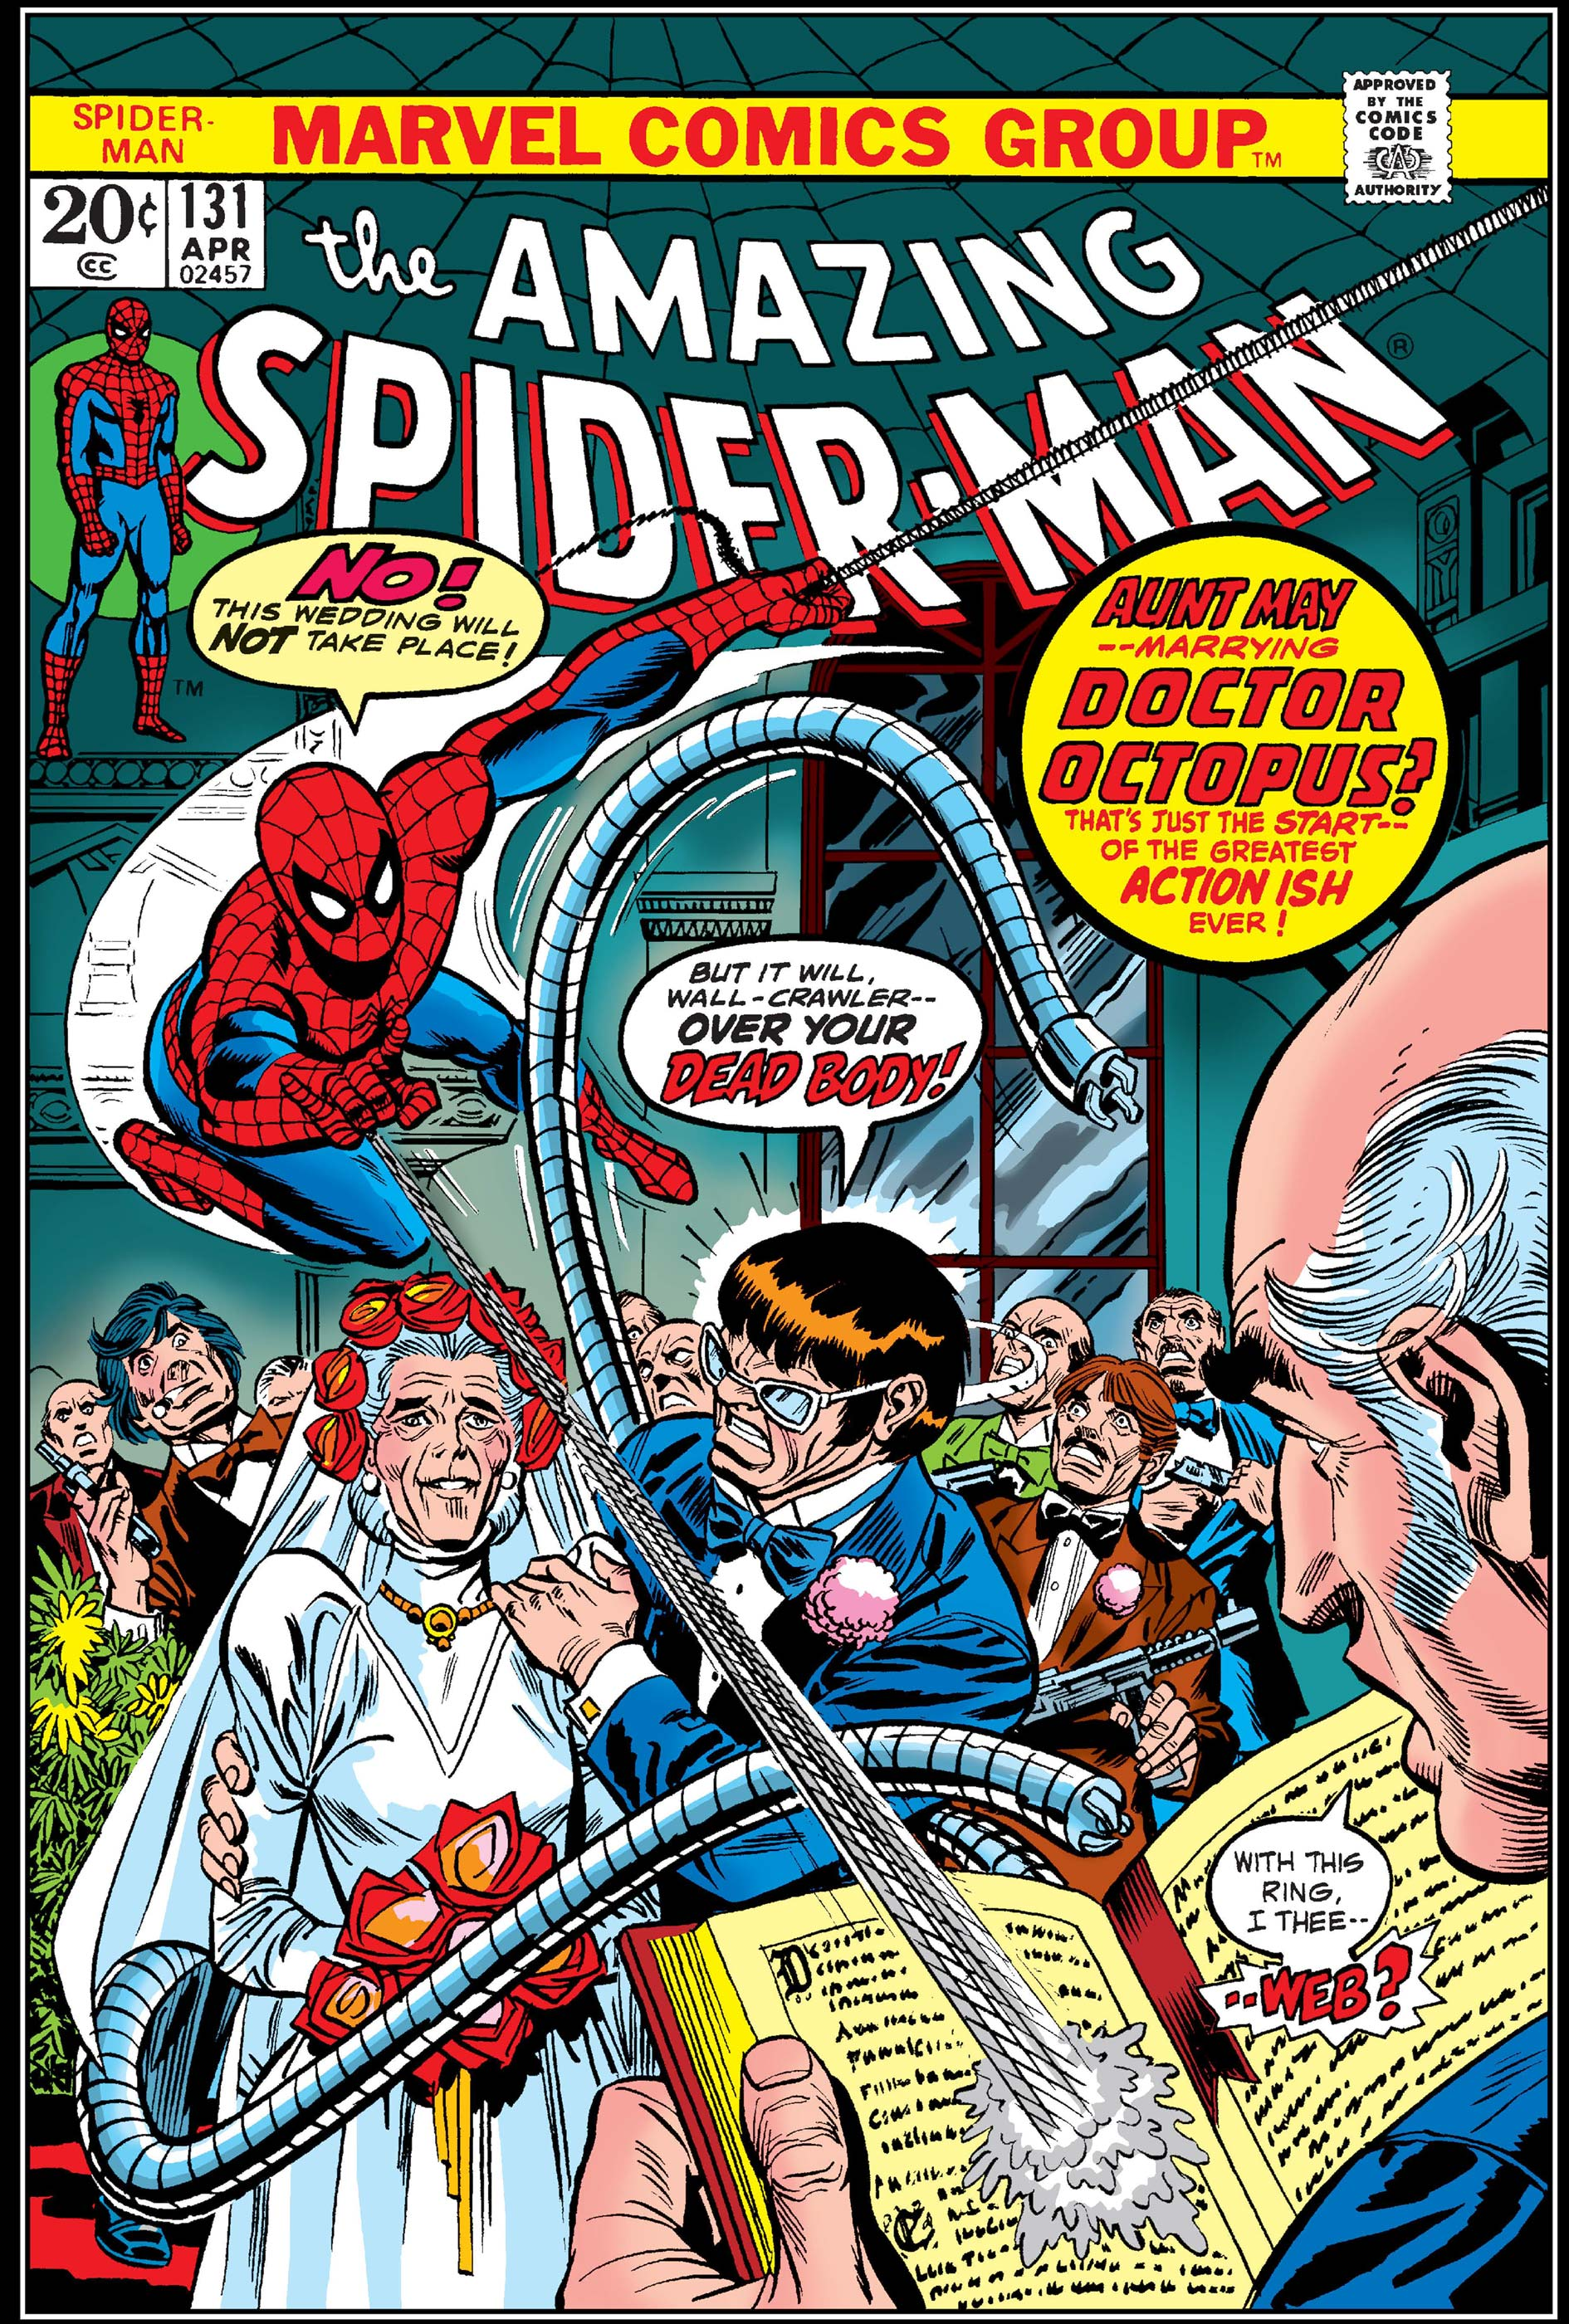 The Amazing Spider-Man (1963) #131